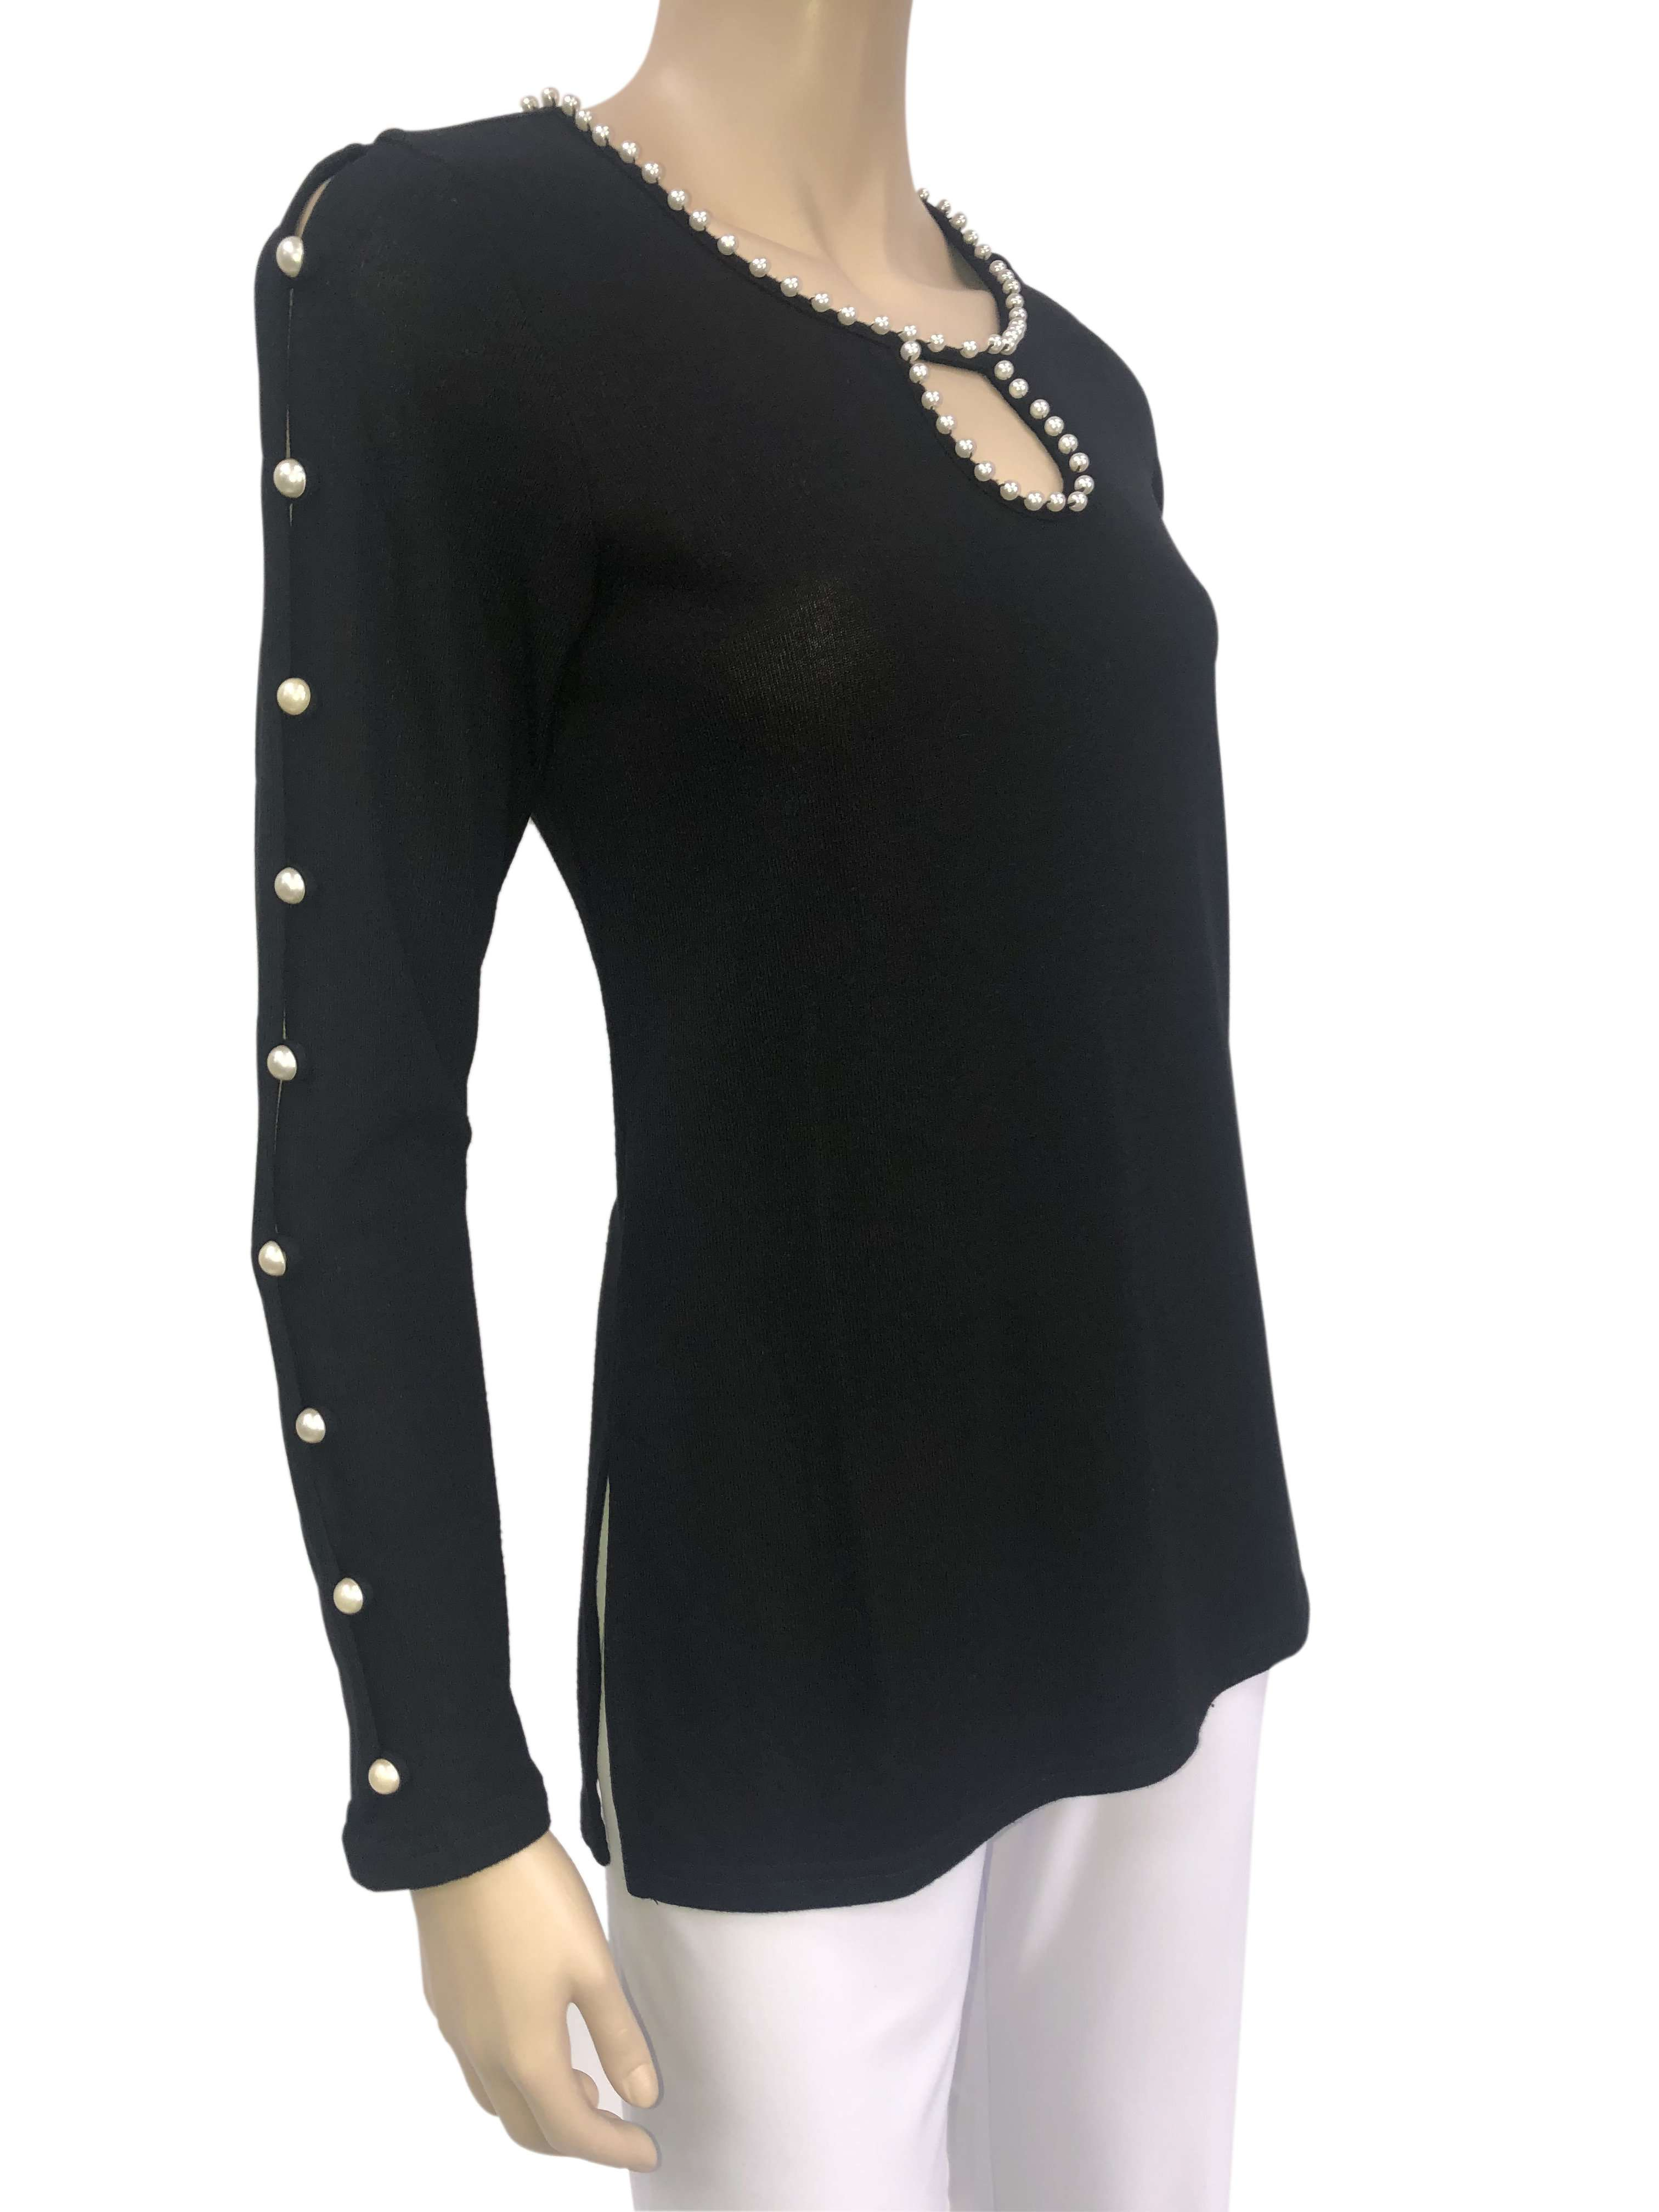 Womens Blouses Canada | Black Long Sleeve Blouse | Pearls | Ym Style - Yvonne Marie